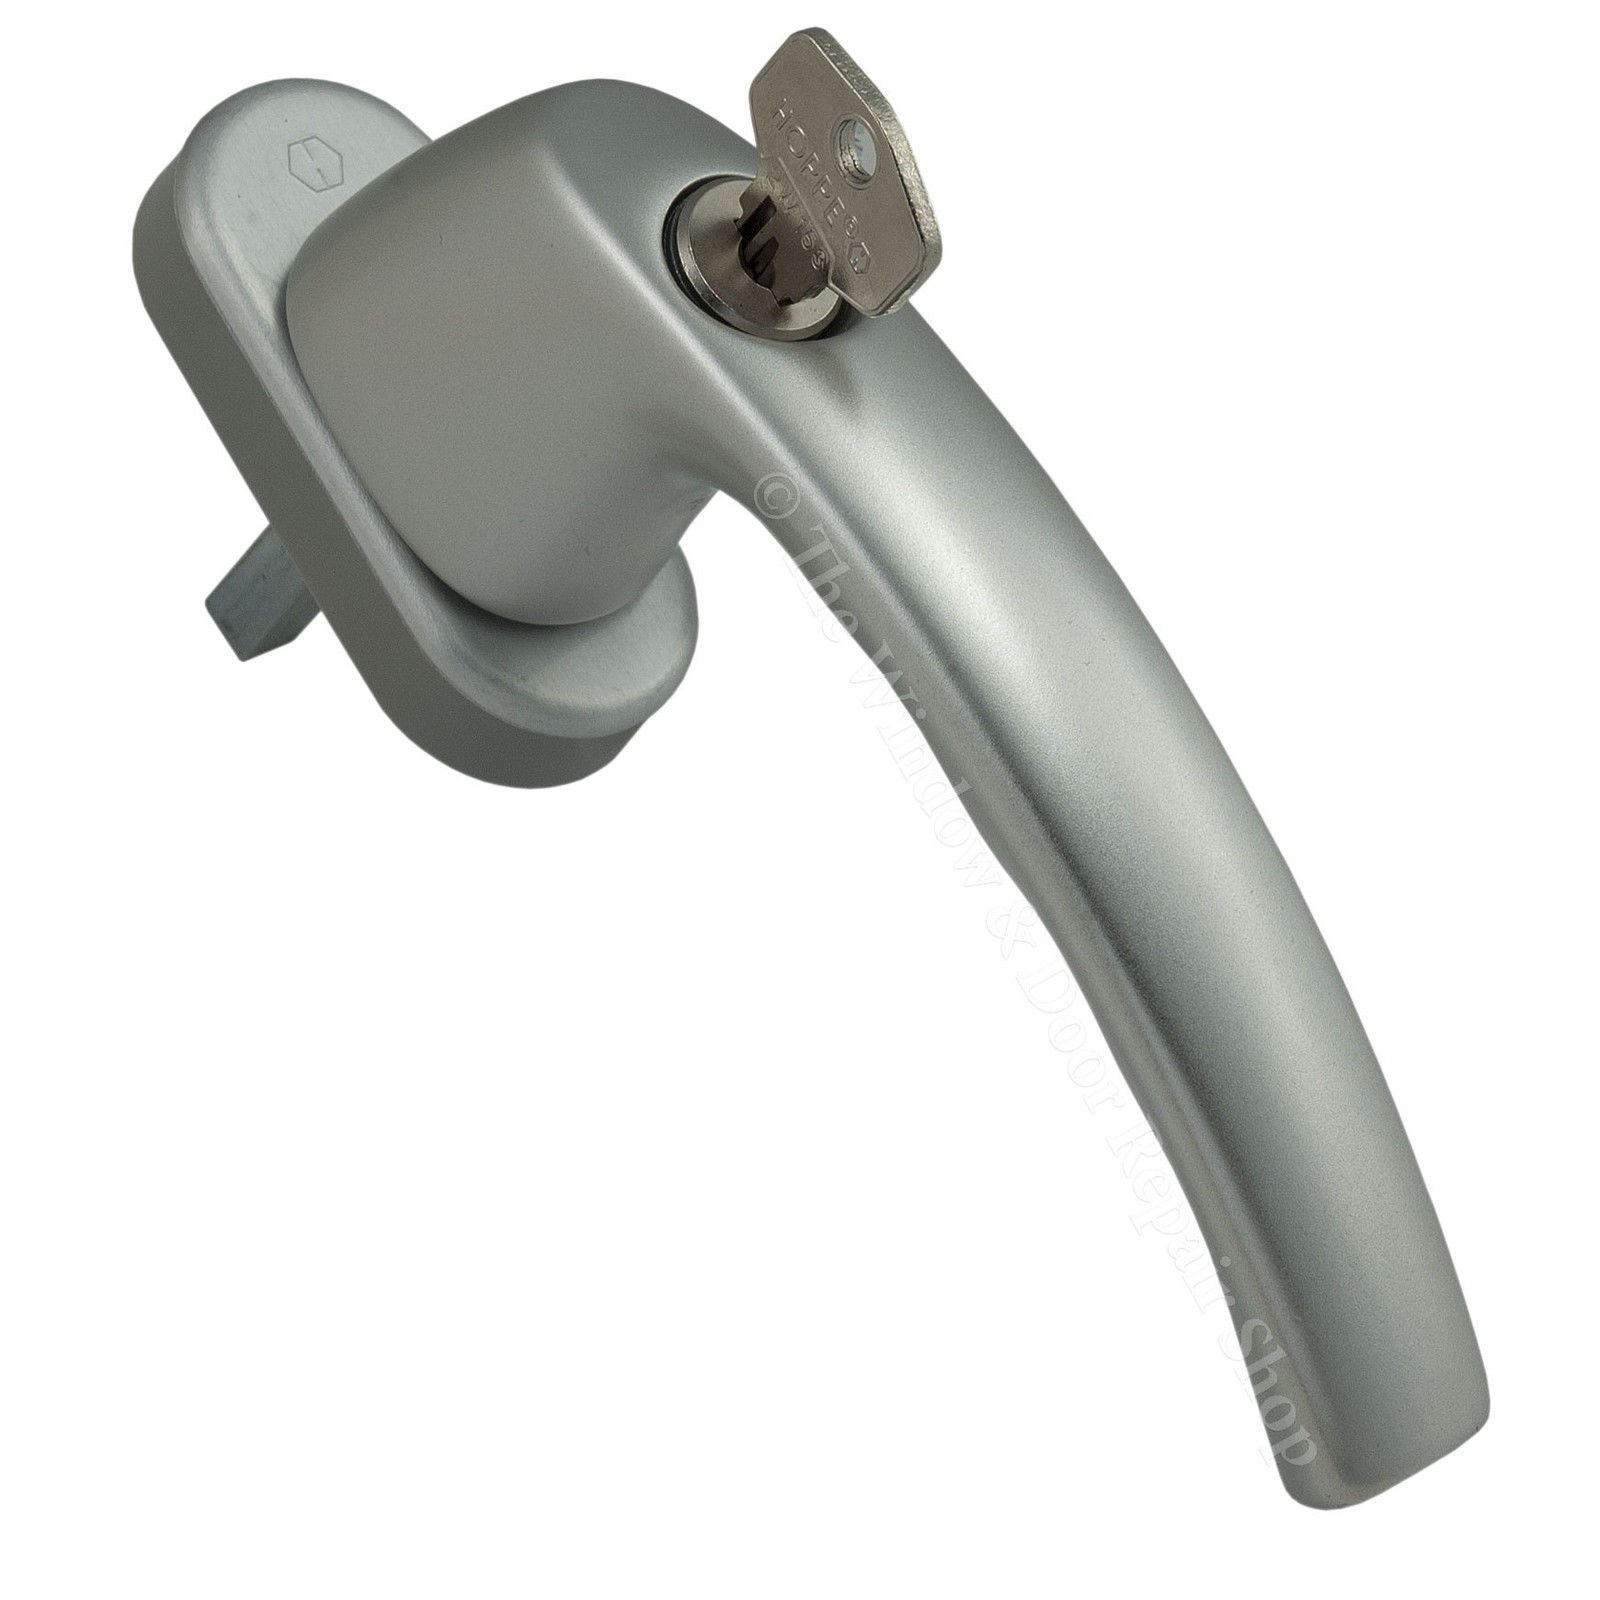 Handing Tilt Turn : Hoppe silver tilt and turn window handle t locking tbt